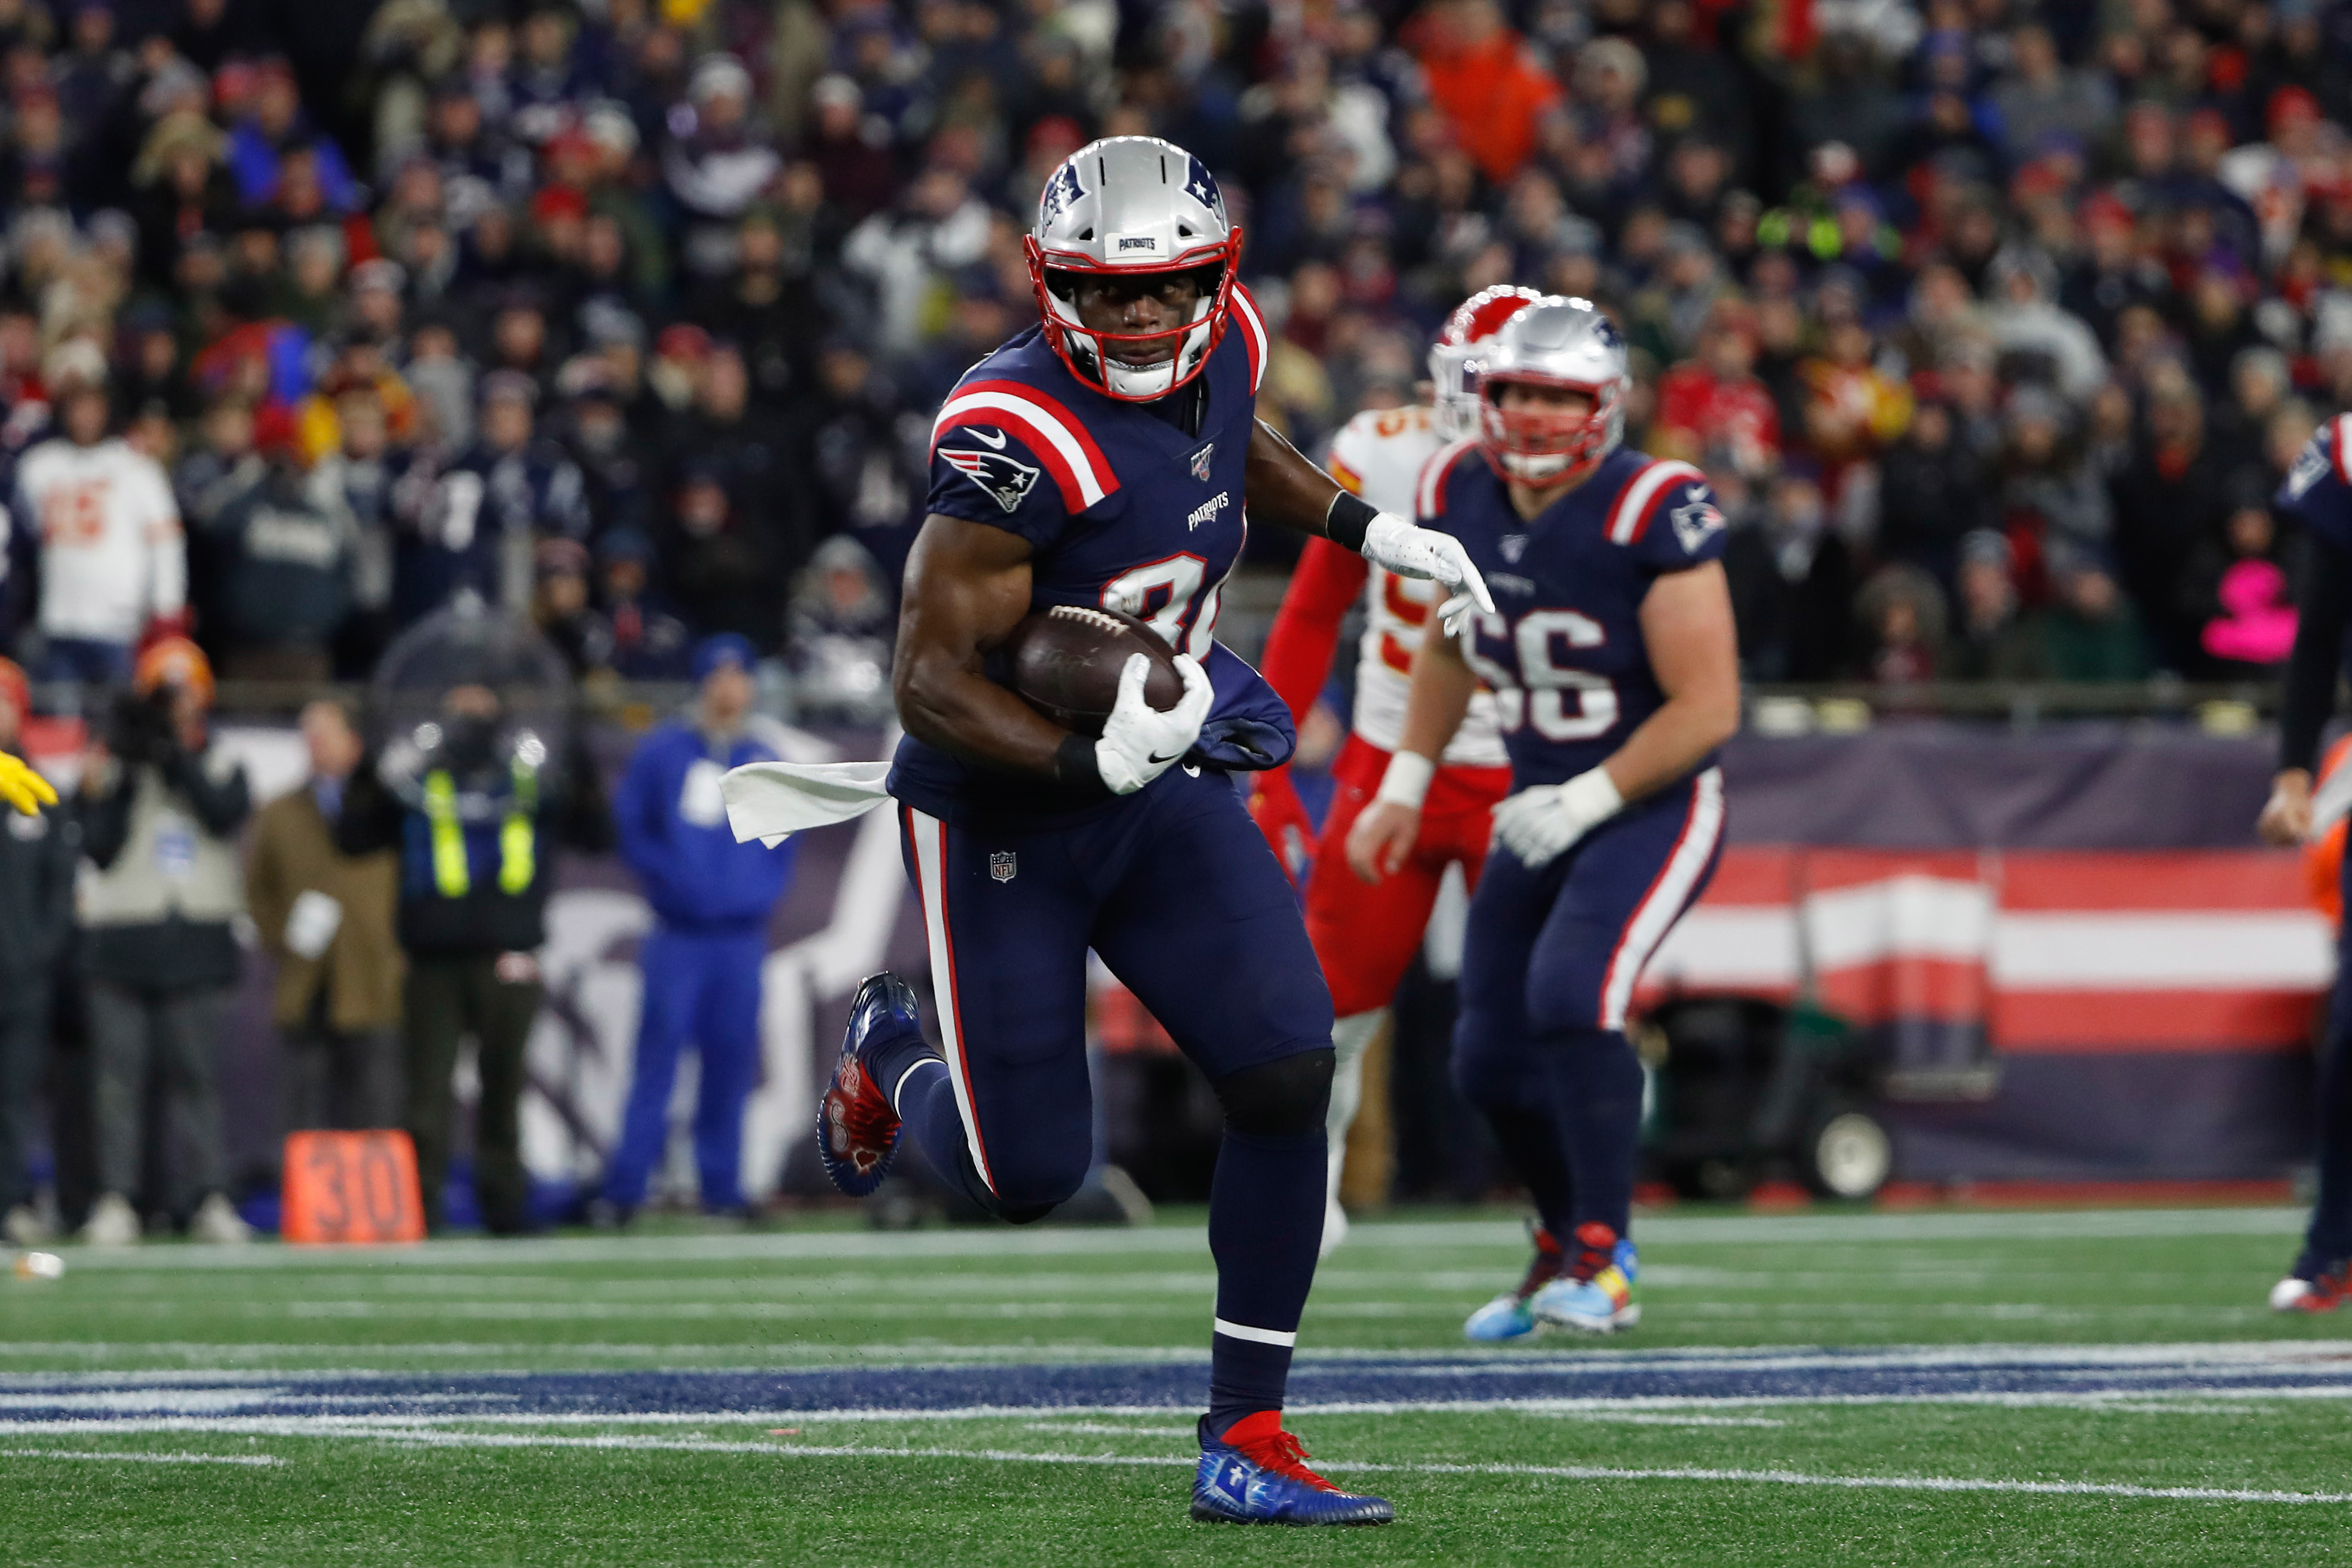 Top 5 Needs for Patriots This Offseason